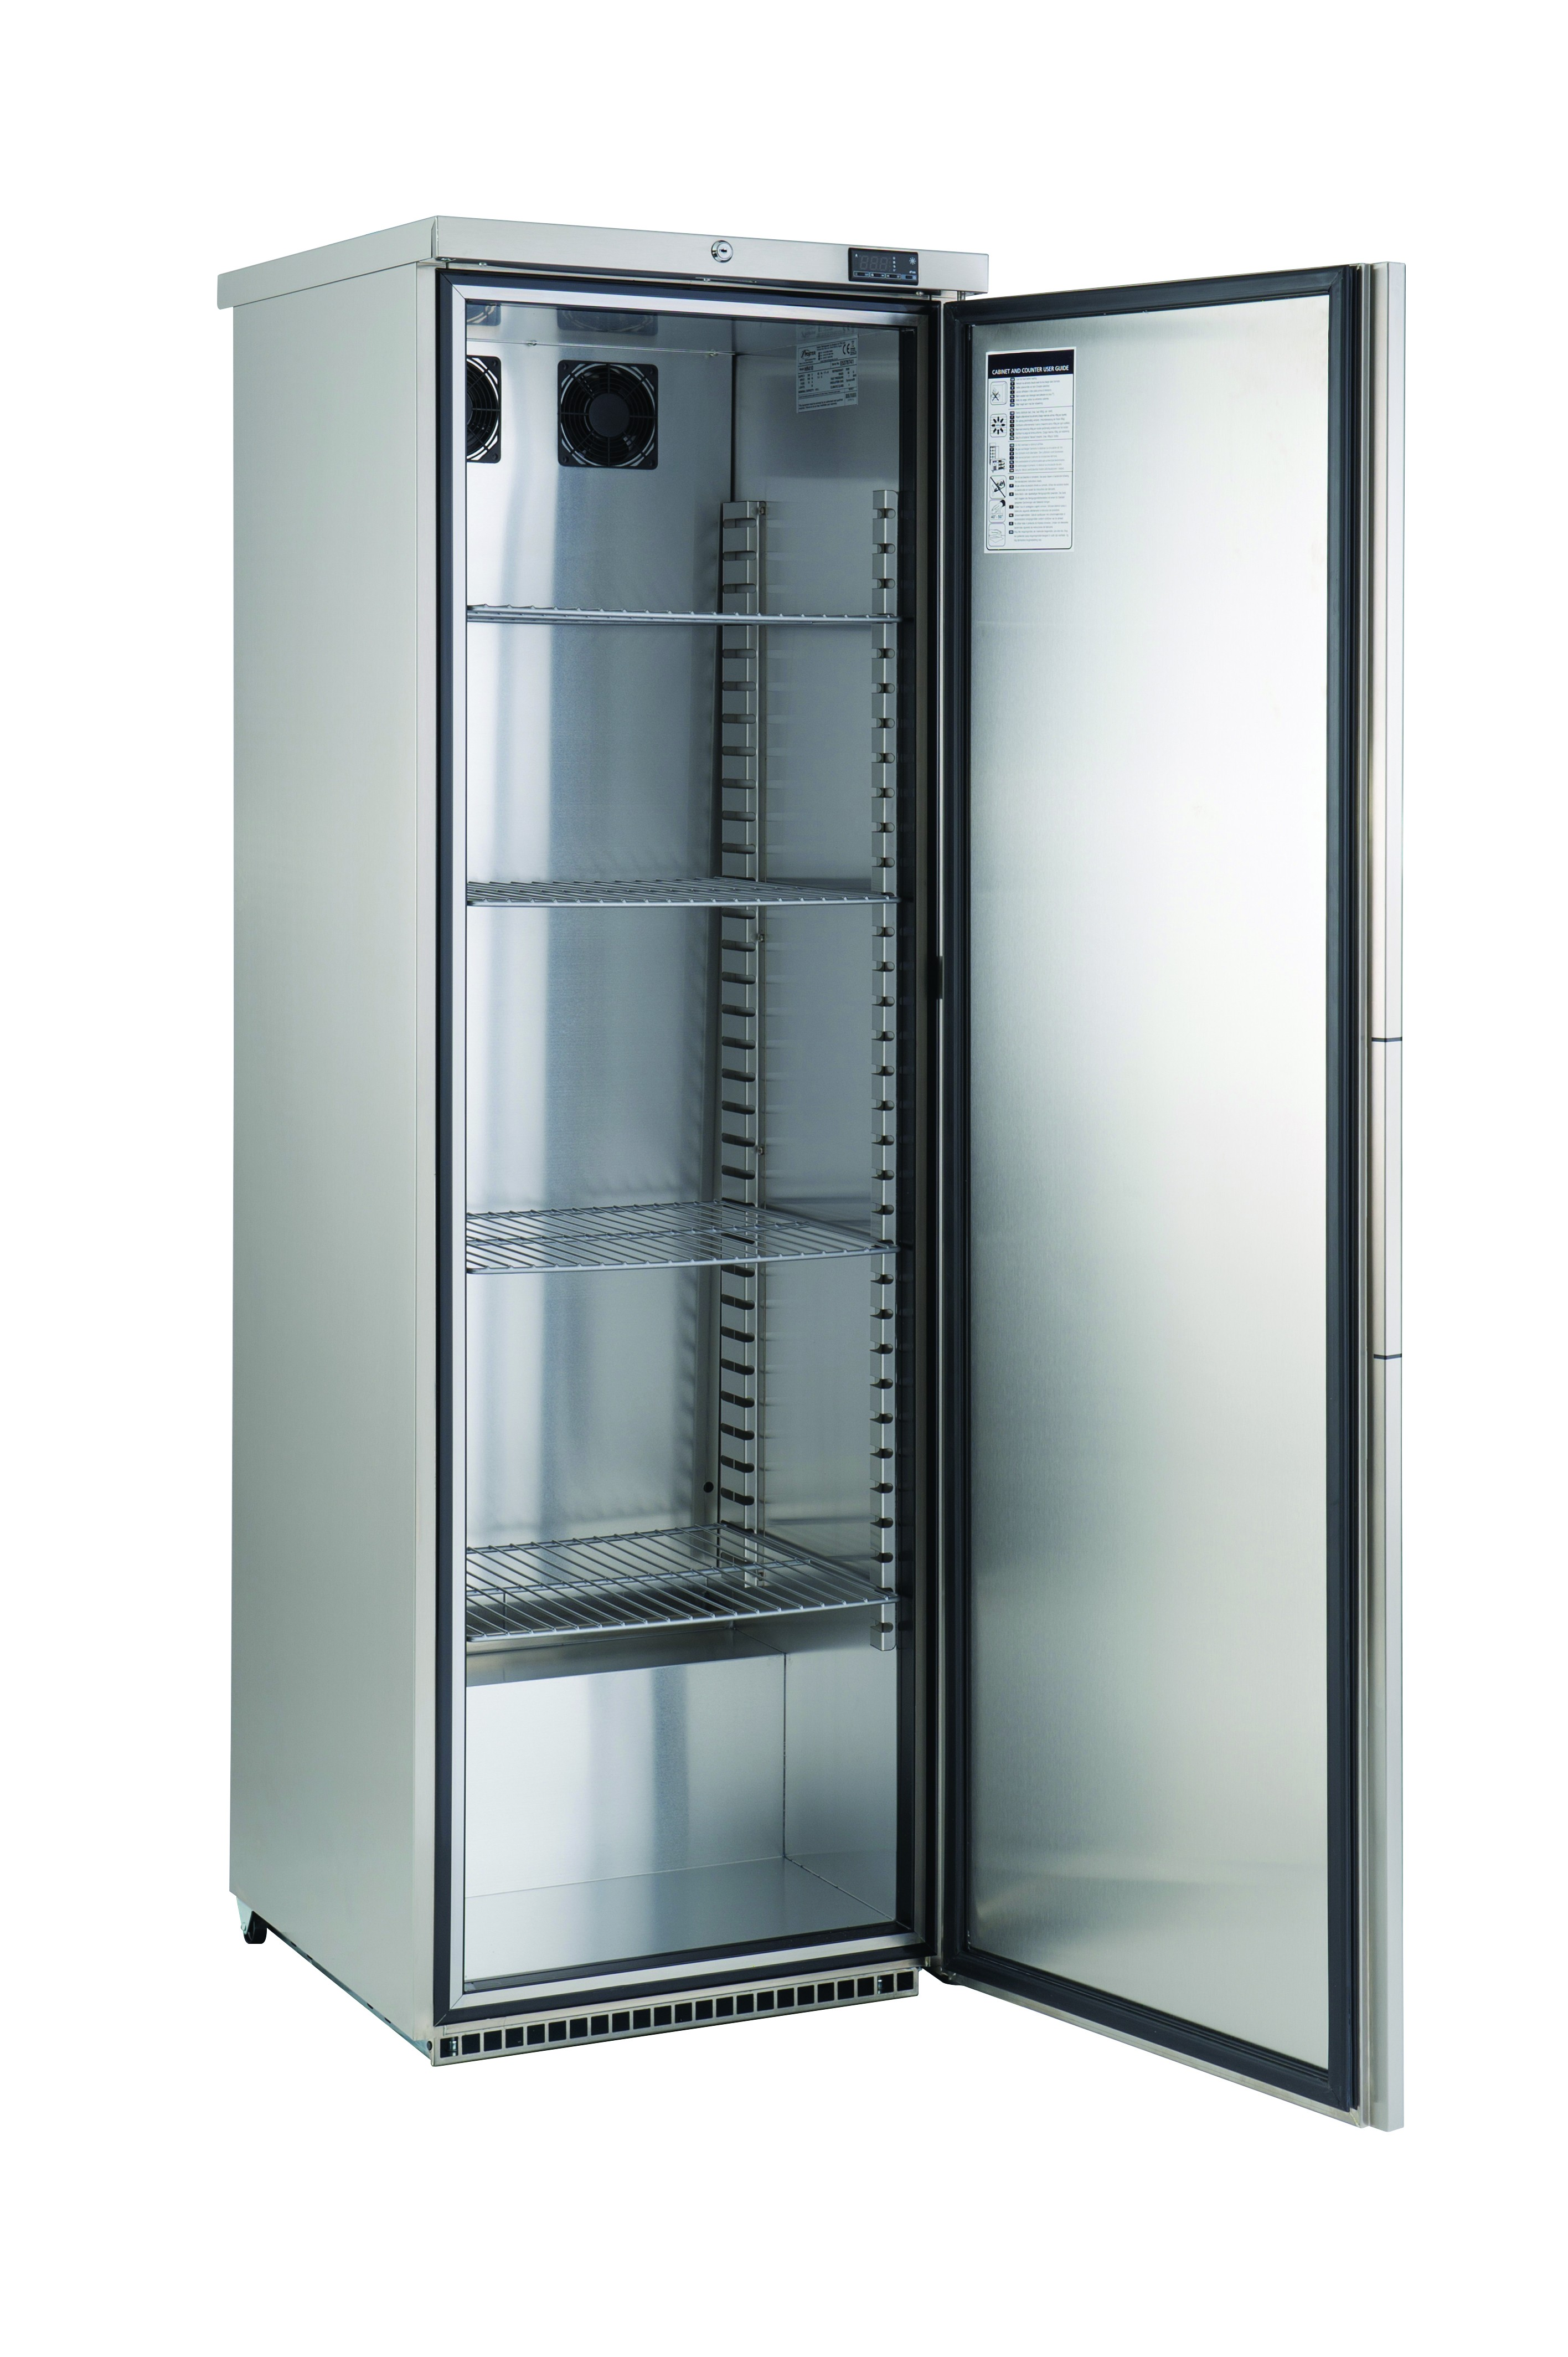 Foster Xr 415g Xtra Economy Refrigerator With Glass Door